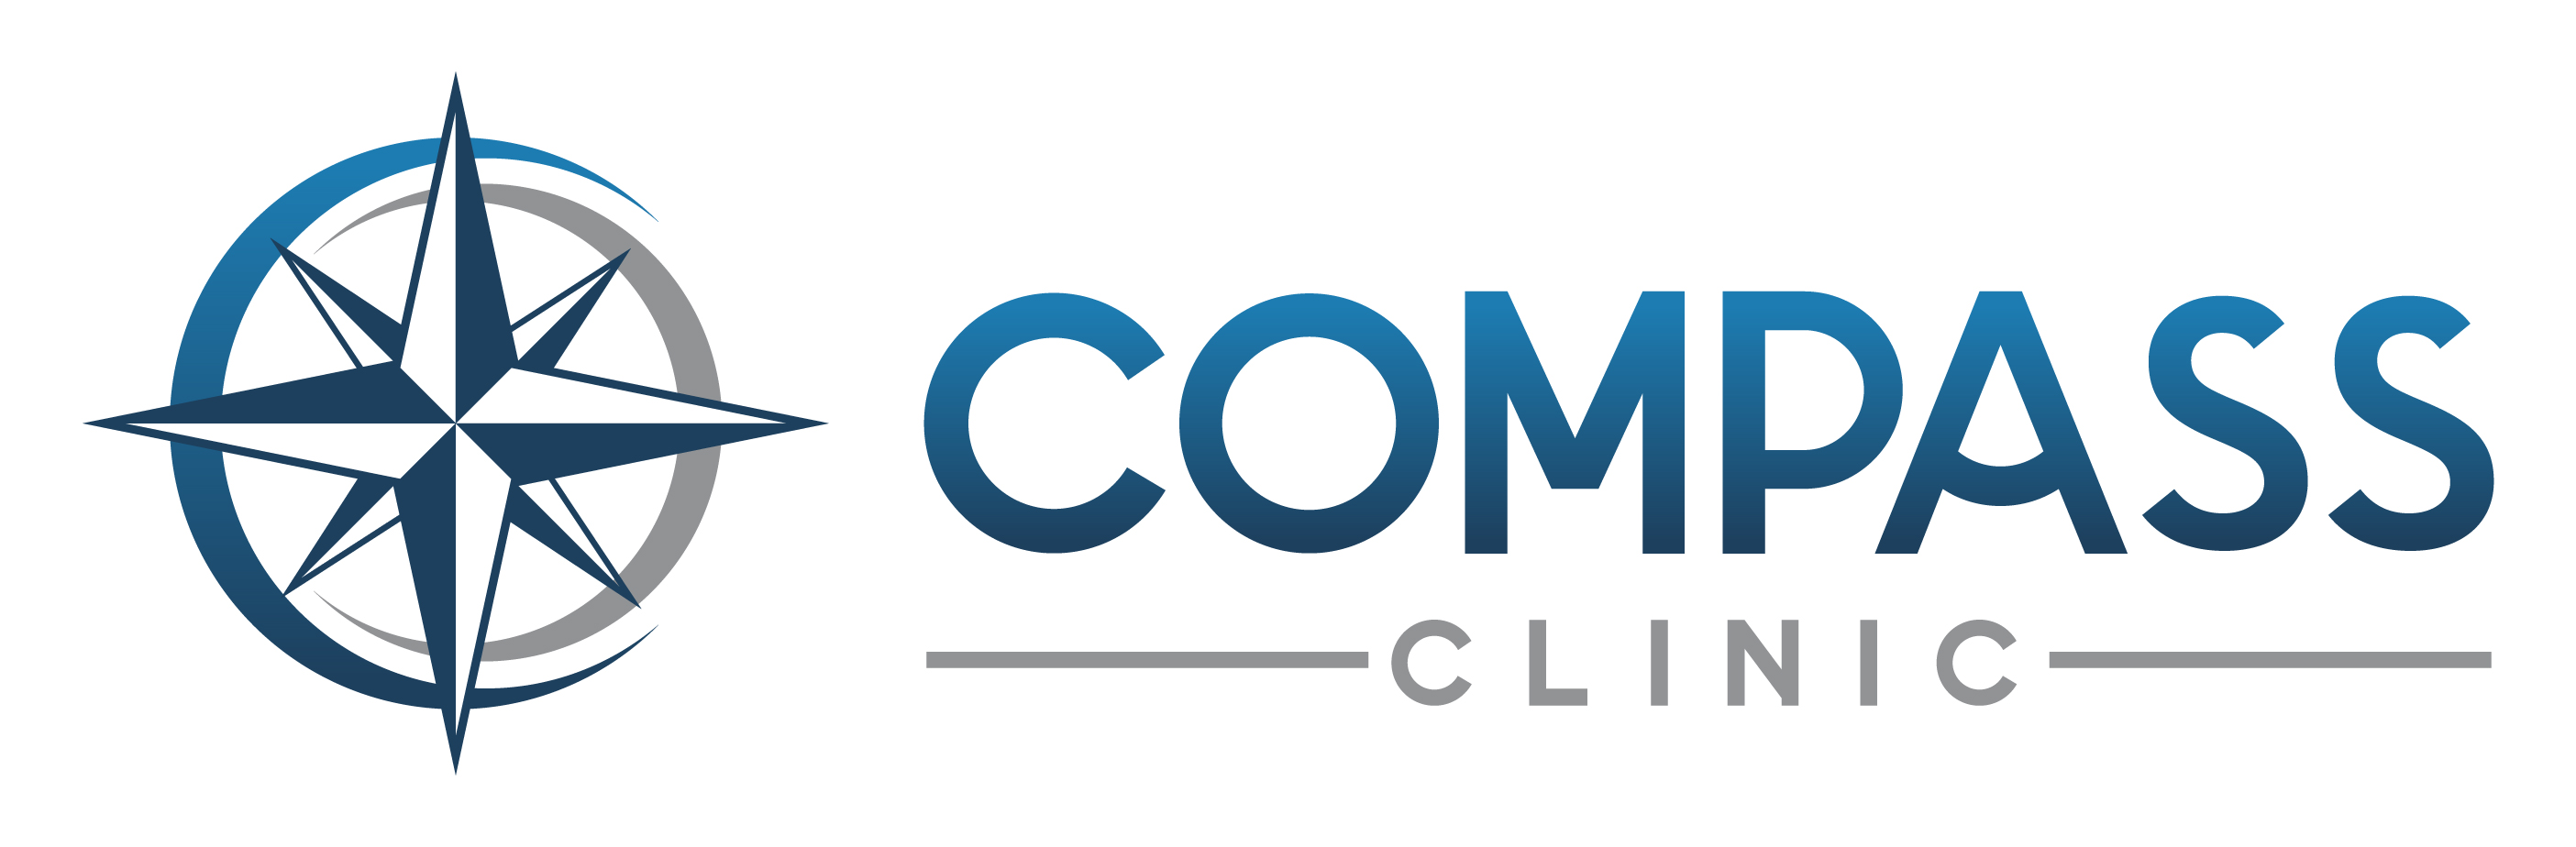 Compass Clinic Blog